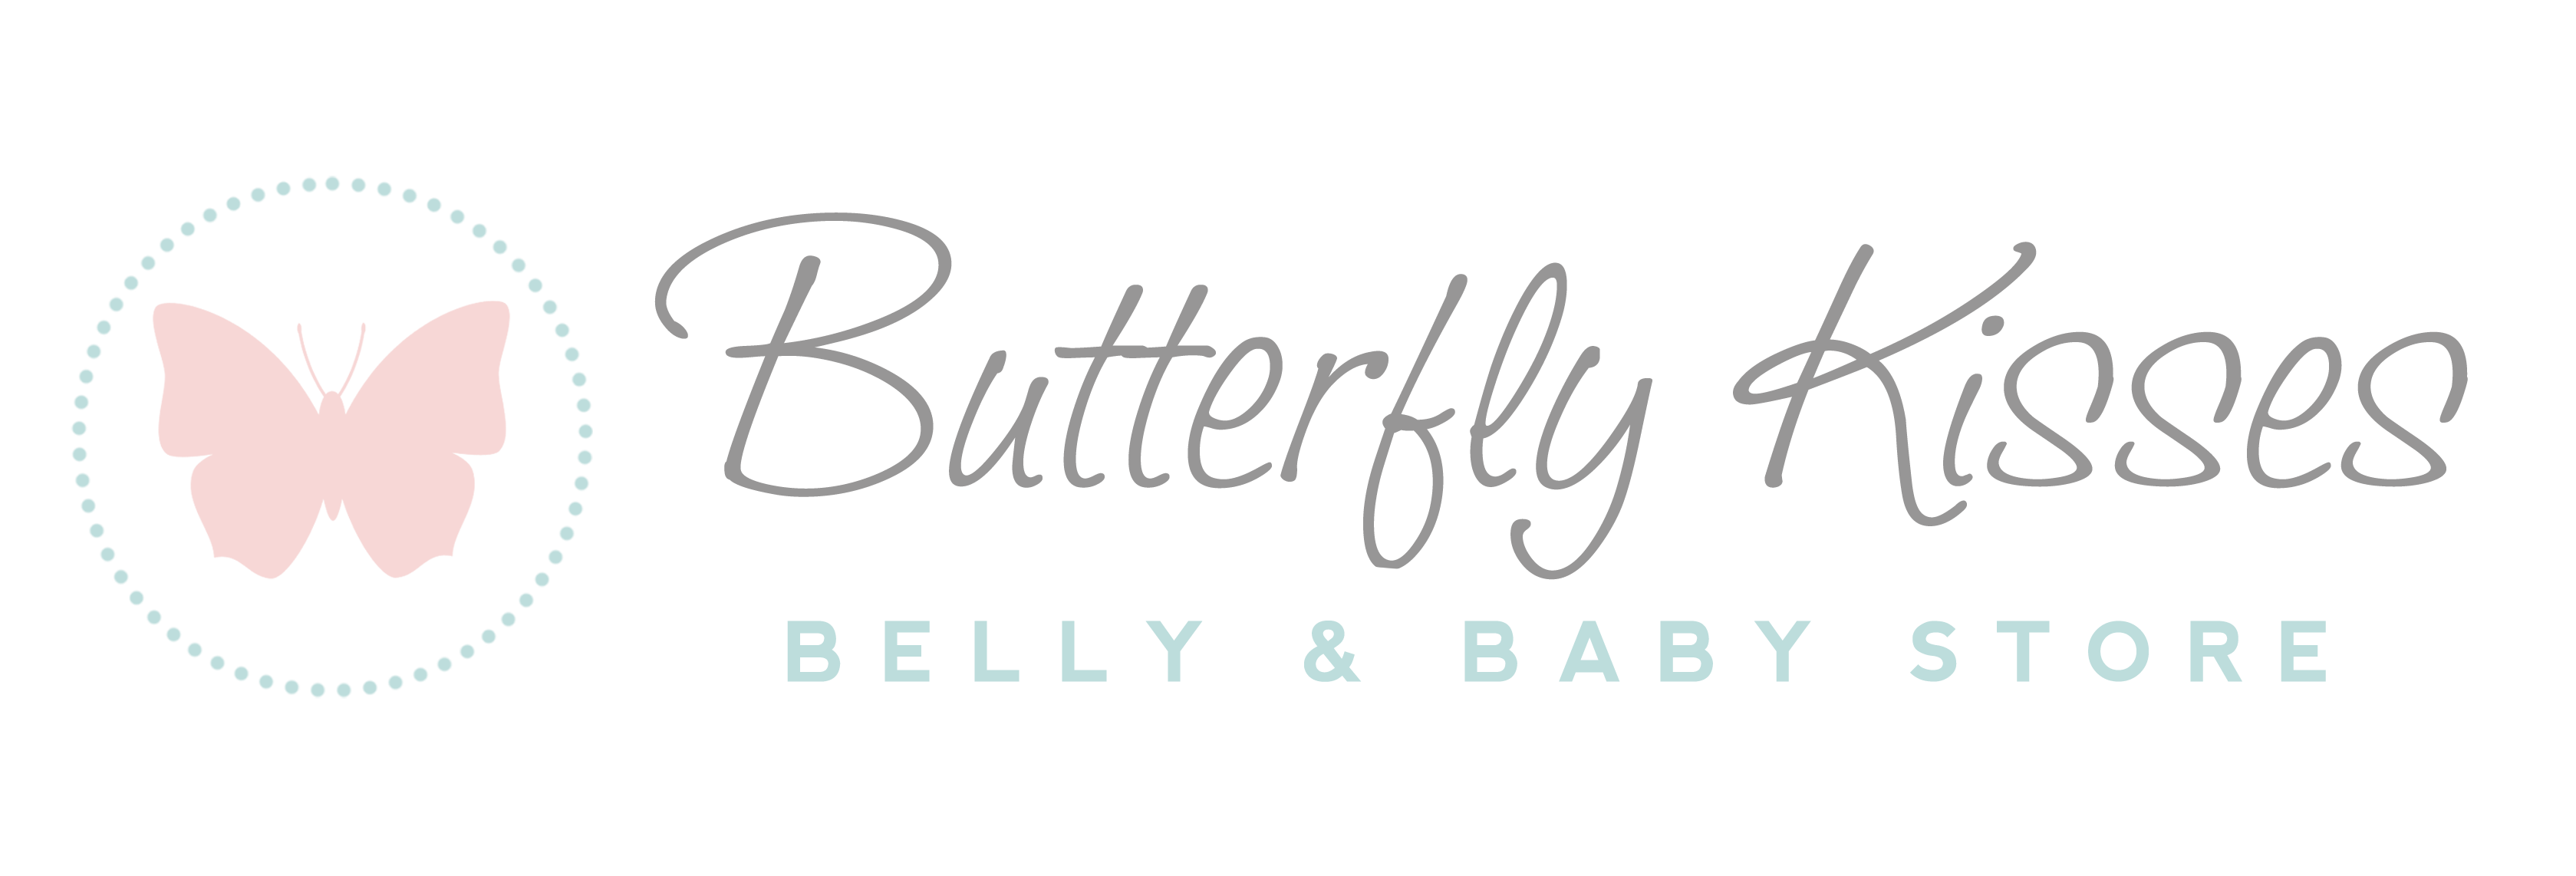 Butterfly Kisses Belly & Baby Store